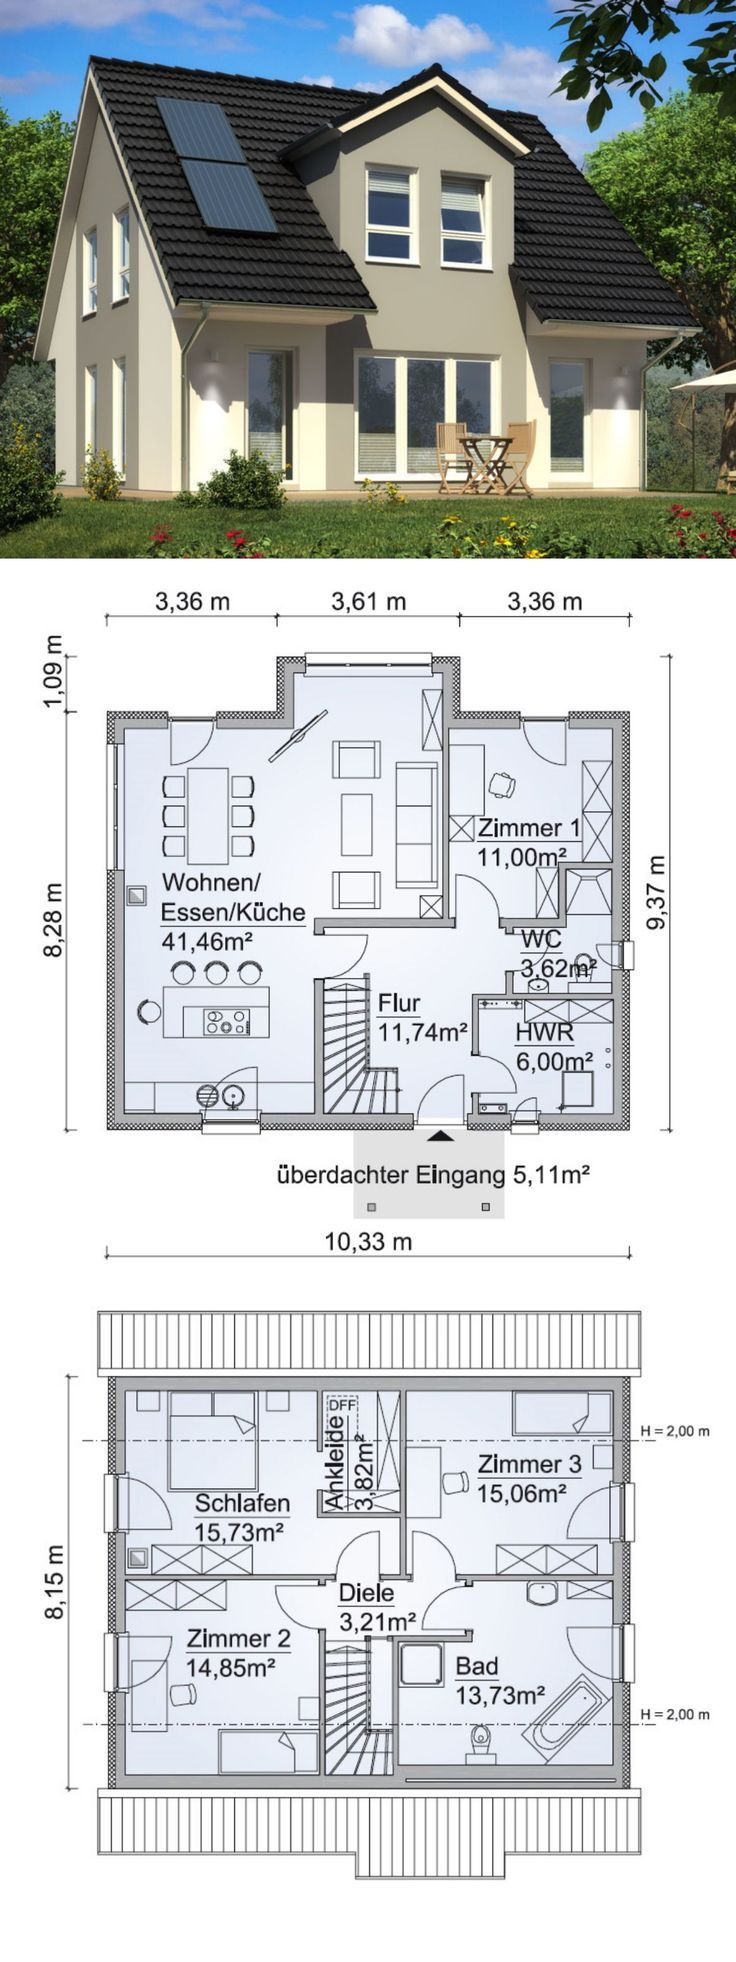 Single Family House New Building Floor Plan With Pitched Roof Architektur Zwerchgiebel Hau Archit Affordable House Plans Building A House Floor Plans